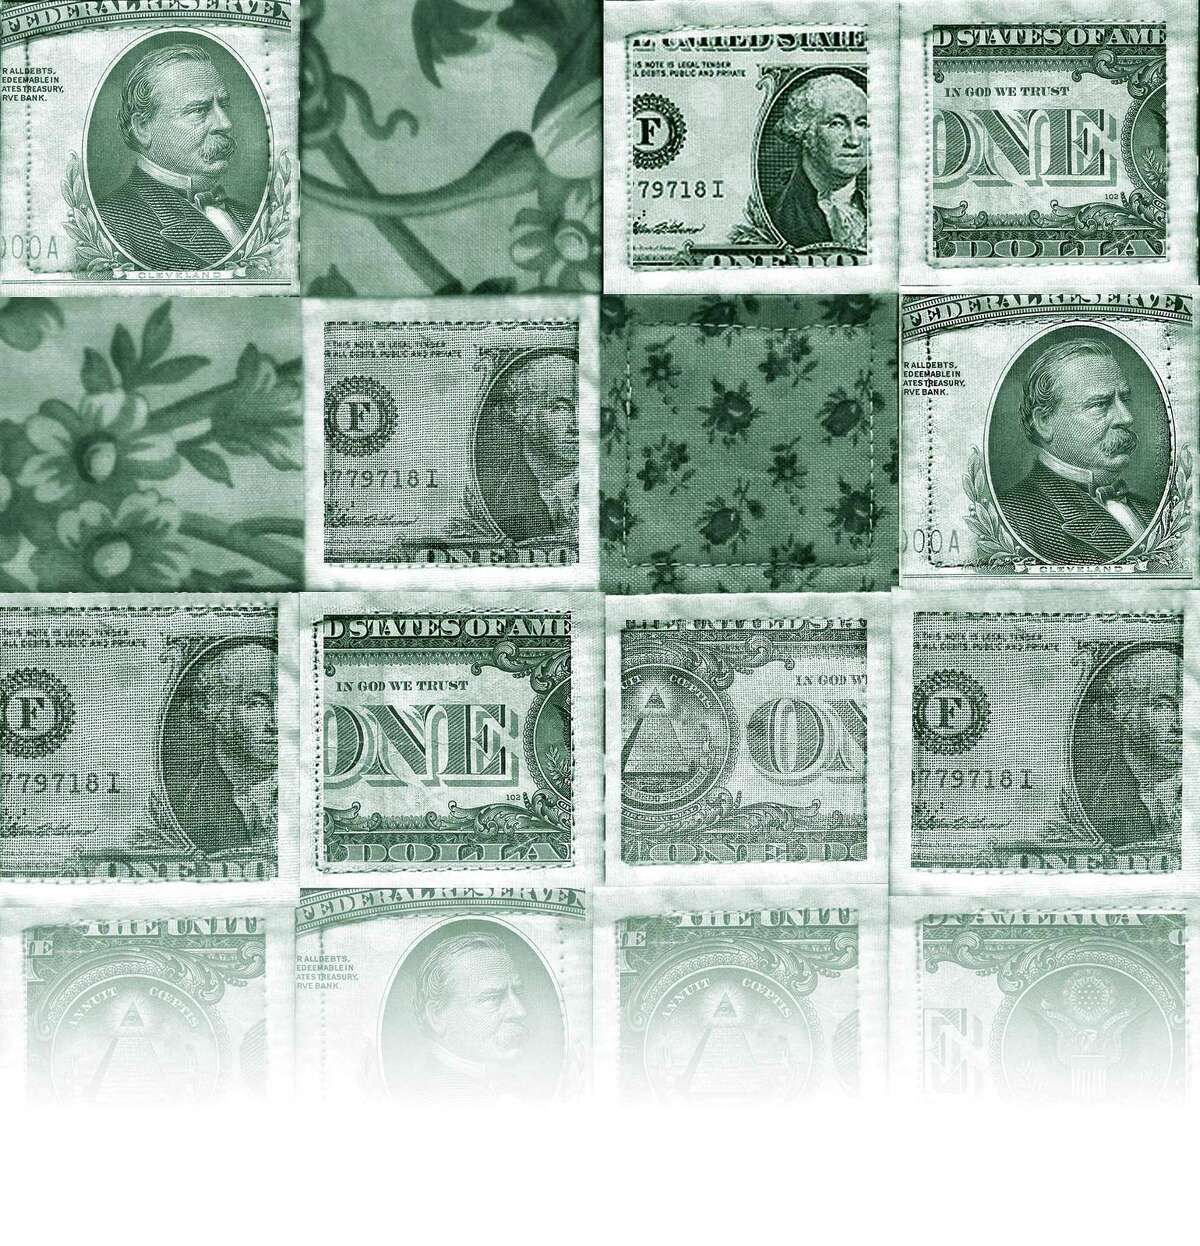 300 dpi Michael Miner color illustration of a quilt made up of U.S. currency. Chicago Tribune 2008 With BC-CPT-SOCIALFINANCE:TB, Chicago Tribune by Eric Benderoff 04000000; FIN; krtbusiness business; krtnational national; krtedonly; mctillustration; 04008002; 04008004; 04008009; 04008014; 04008016; 04008017; 04008018; 04008019; 04008020; 04008021; 04008022; 04008026; budget; consumer issue; credit; currency value; debt; inflation; INT; interest rate; krtconsumerconfidence consumer confidence; krteconindicator economic indicator; krtmacroecon macroeconomics macro economic; krtmacroecon macroeconomics macro economics; krtnamer north america; krtstock stock; krtusbusiness; loan; mortgage; price; STX; u.s. us united states; krteconcrisis08; currency; dollar; miner; quilt; socialfinance; benderoff; tb contributed; 2008; krt2008